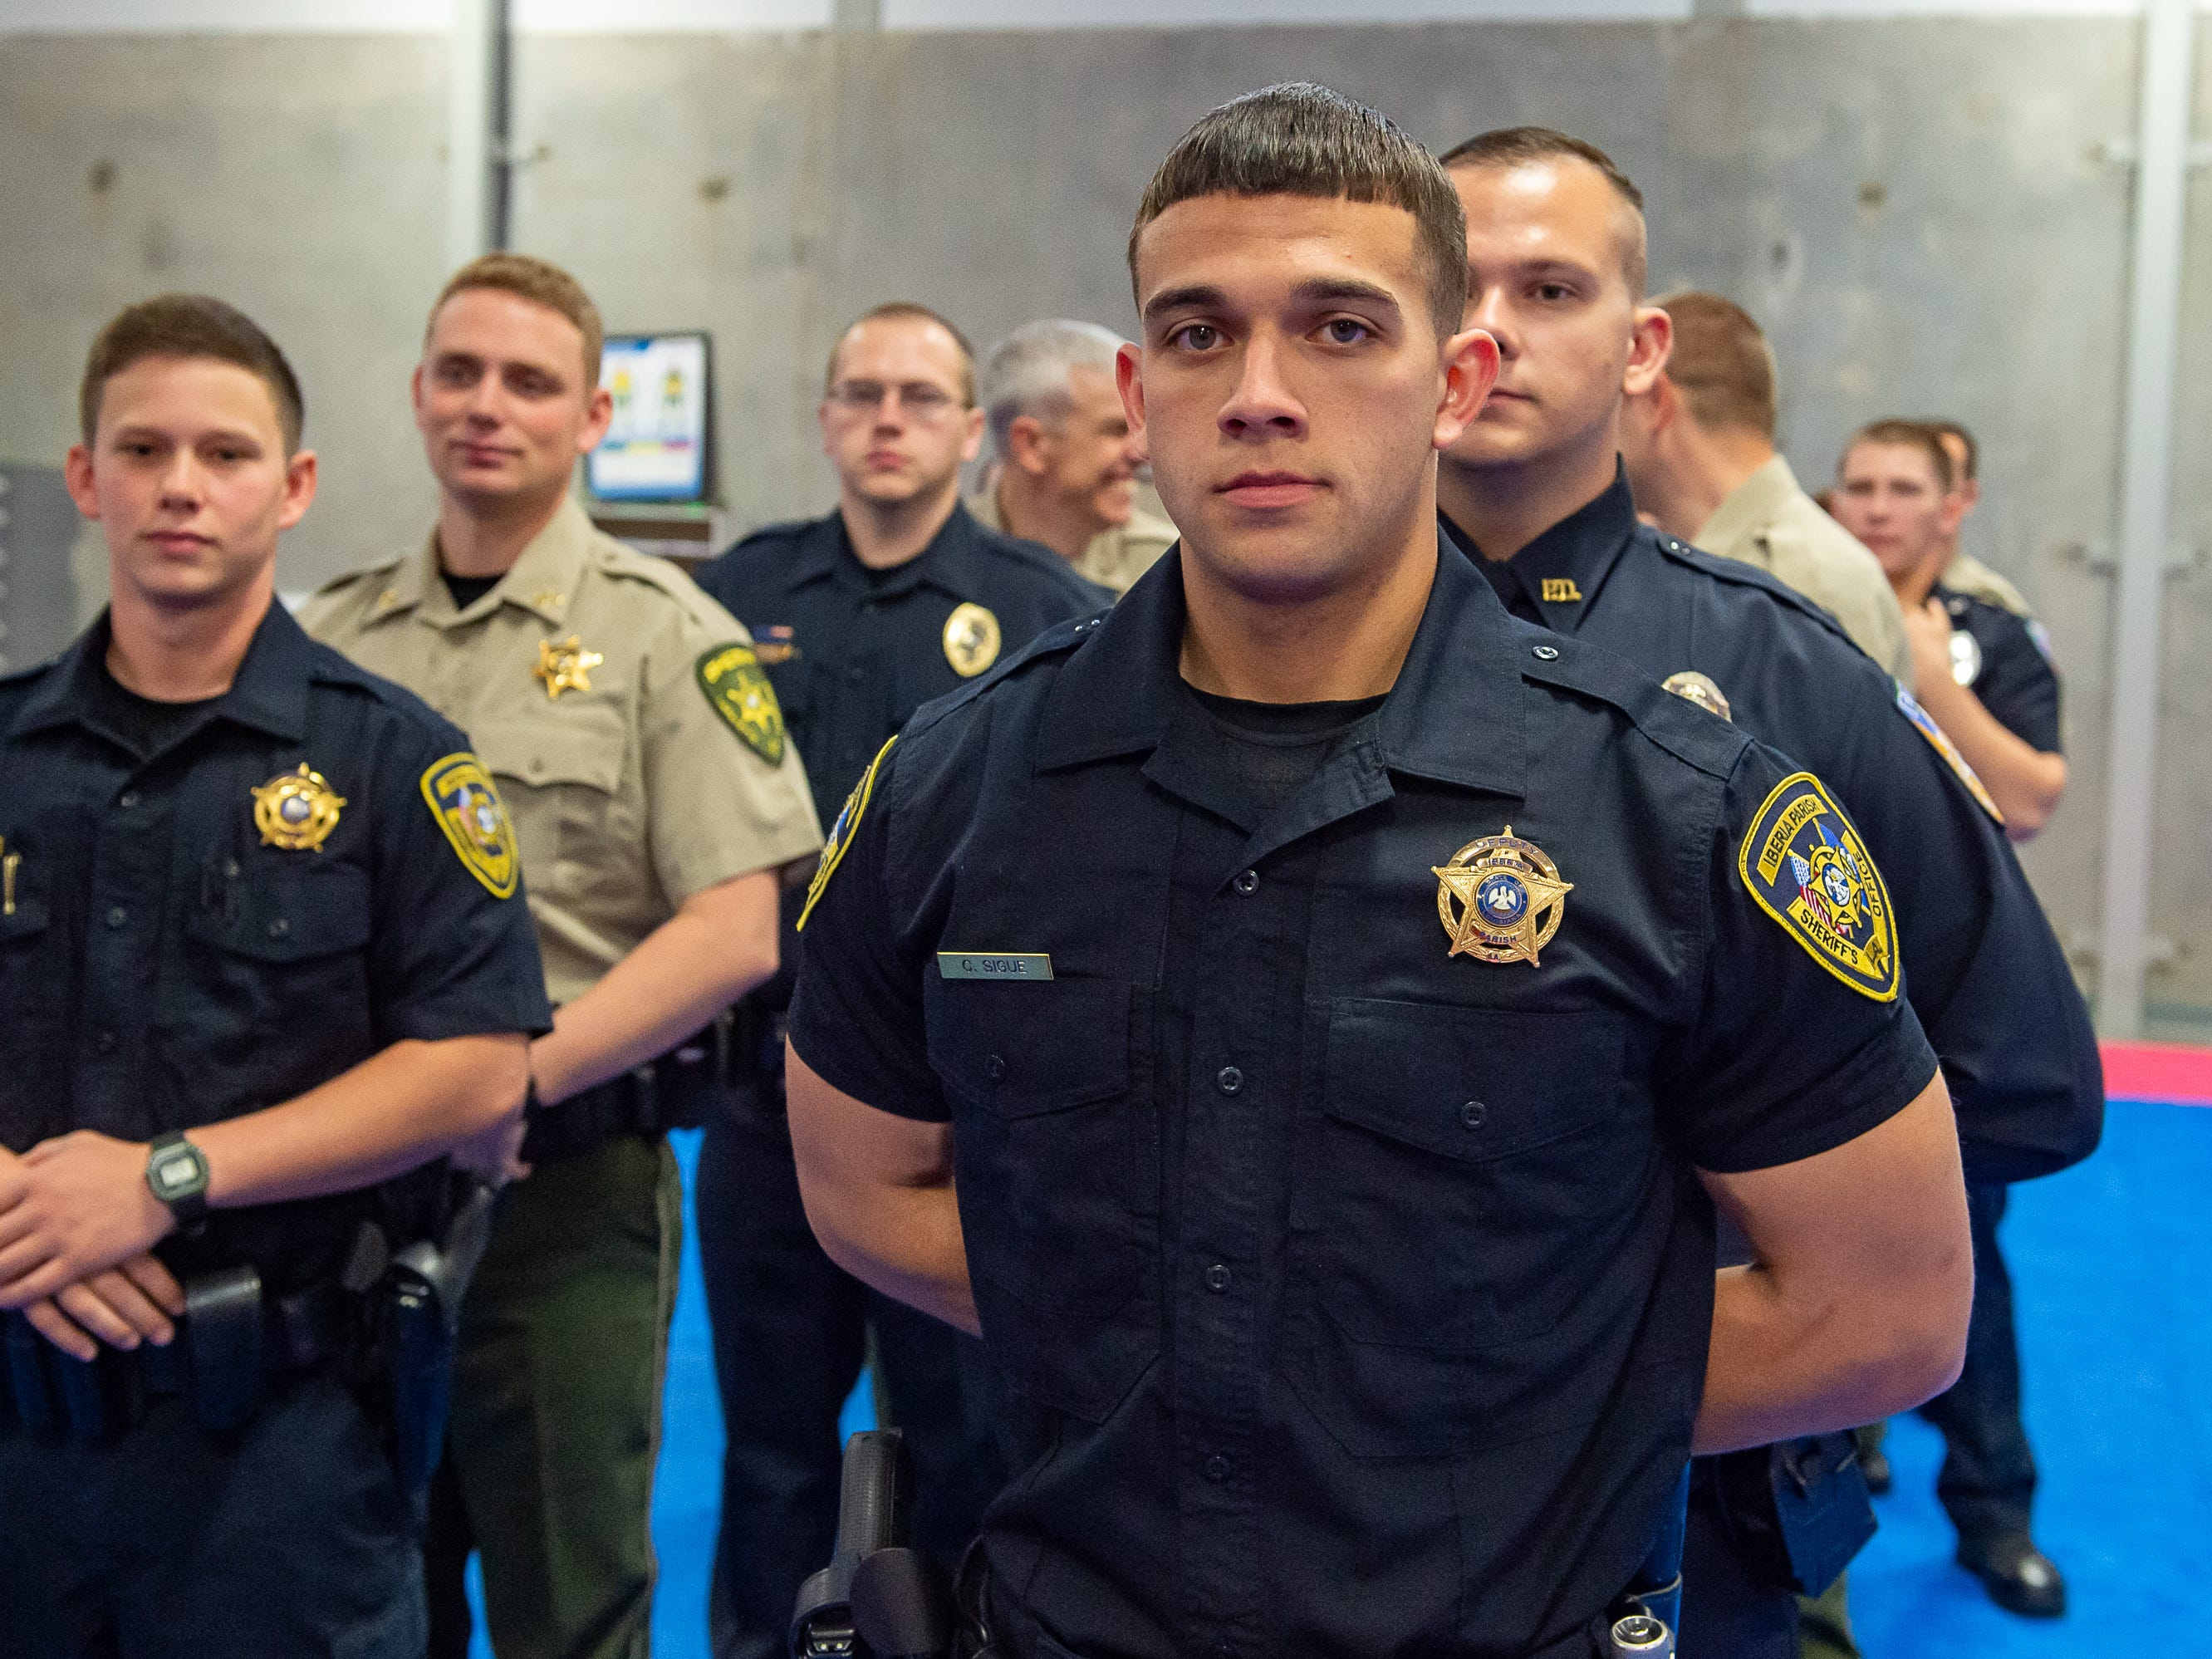 Colby Sigue at the Graduation of Acadiana Law Enforcement Training Academy Class 159. Friday, April 12, 2019.